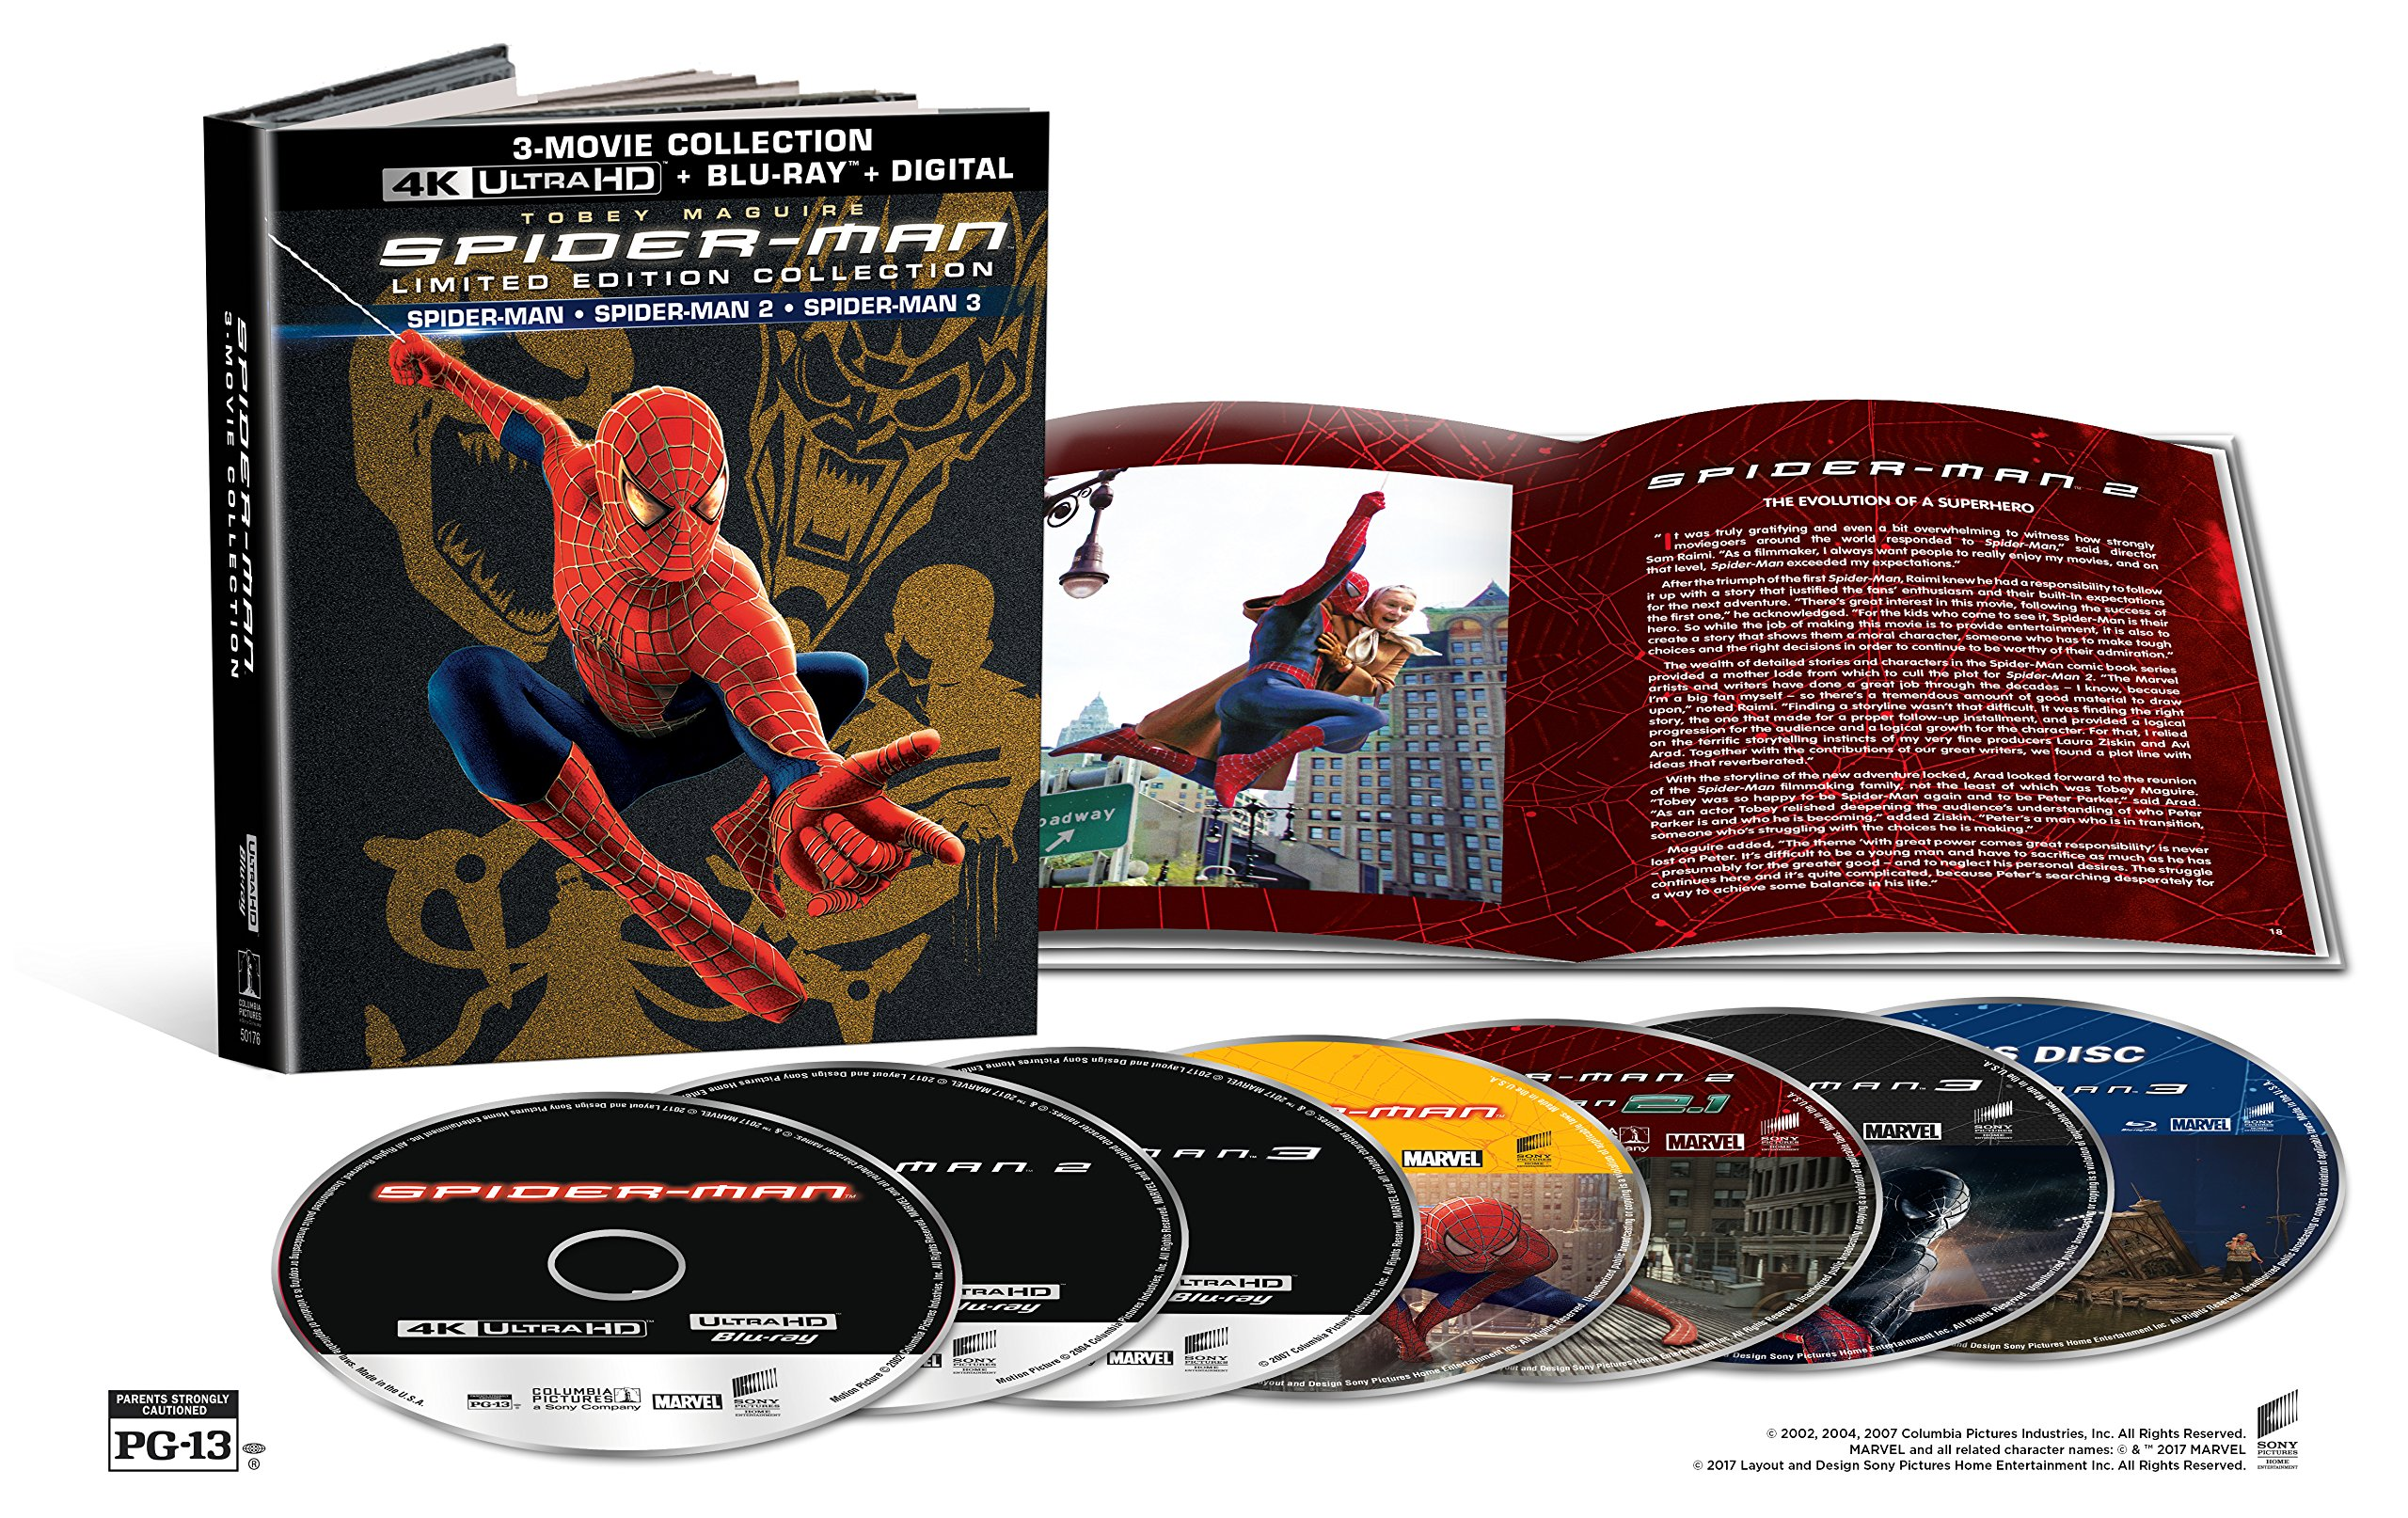 4K Blu-ray : Spider-Man (2002) / Spider-Man 2 (2004) / Spider-Man 3 (2007) (Limited Edition, With Blu-Ray, Boxed Set, Ultraviolet Digital Copy, 4K Mastering)